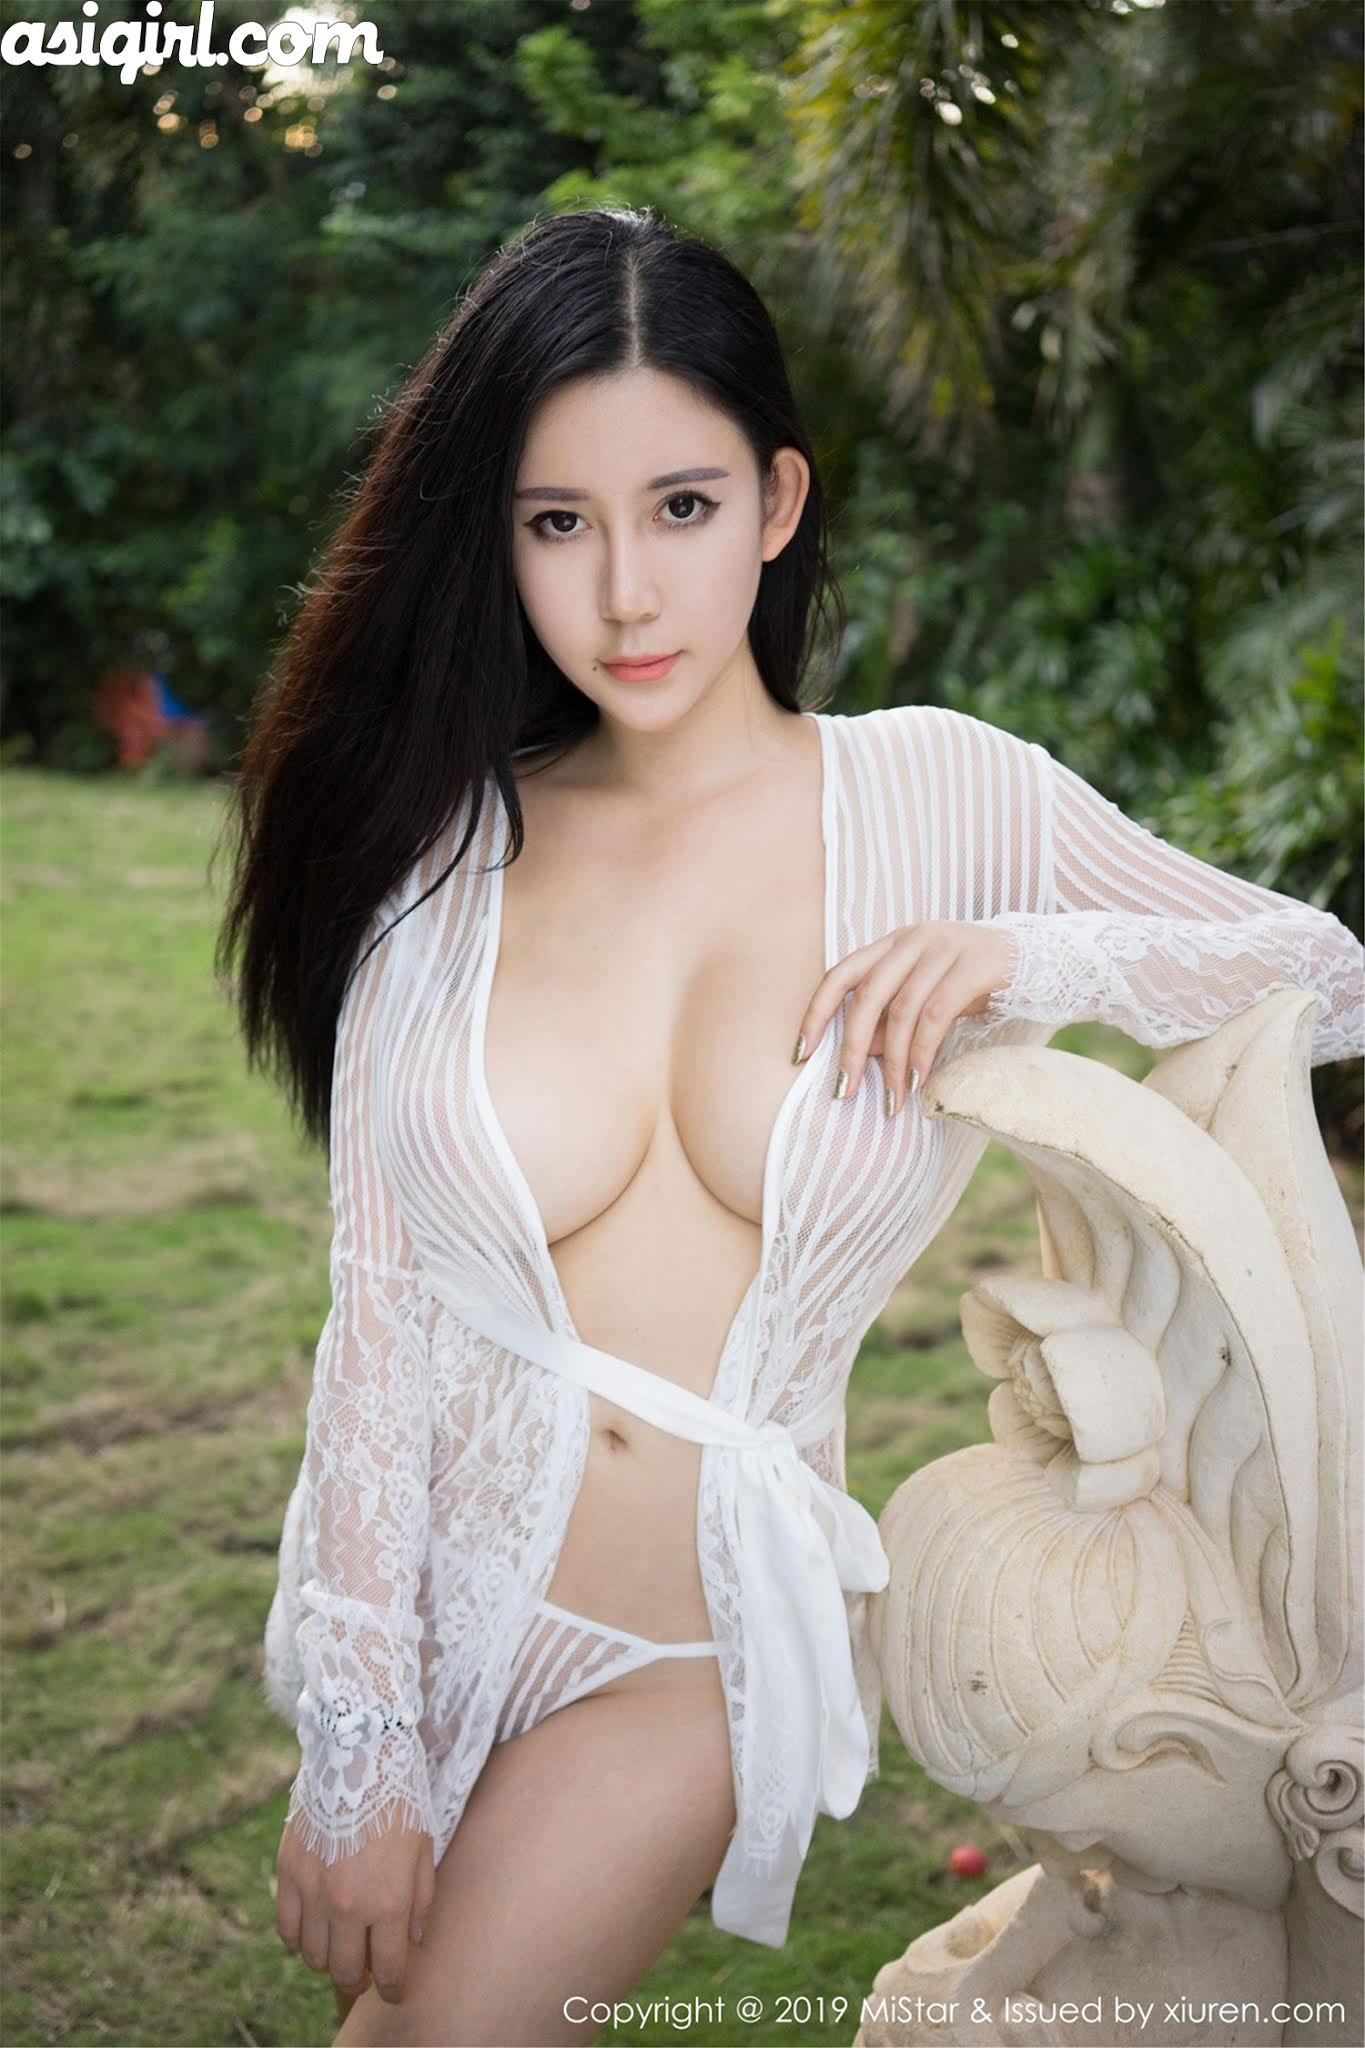 [MiStar]VOL.294 Abby - Asigirl.com - Download free high quality sexy stunning asian pictures